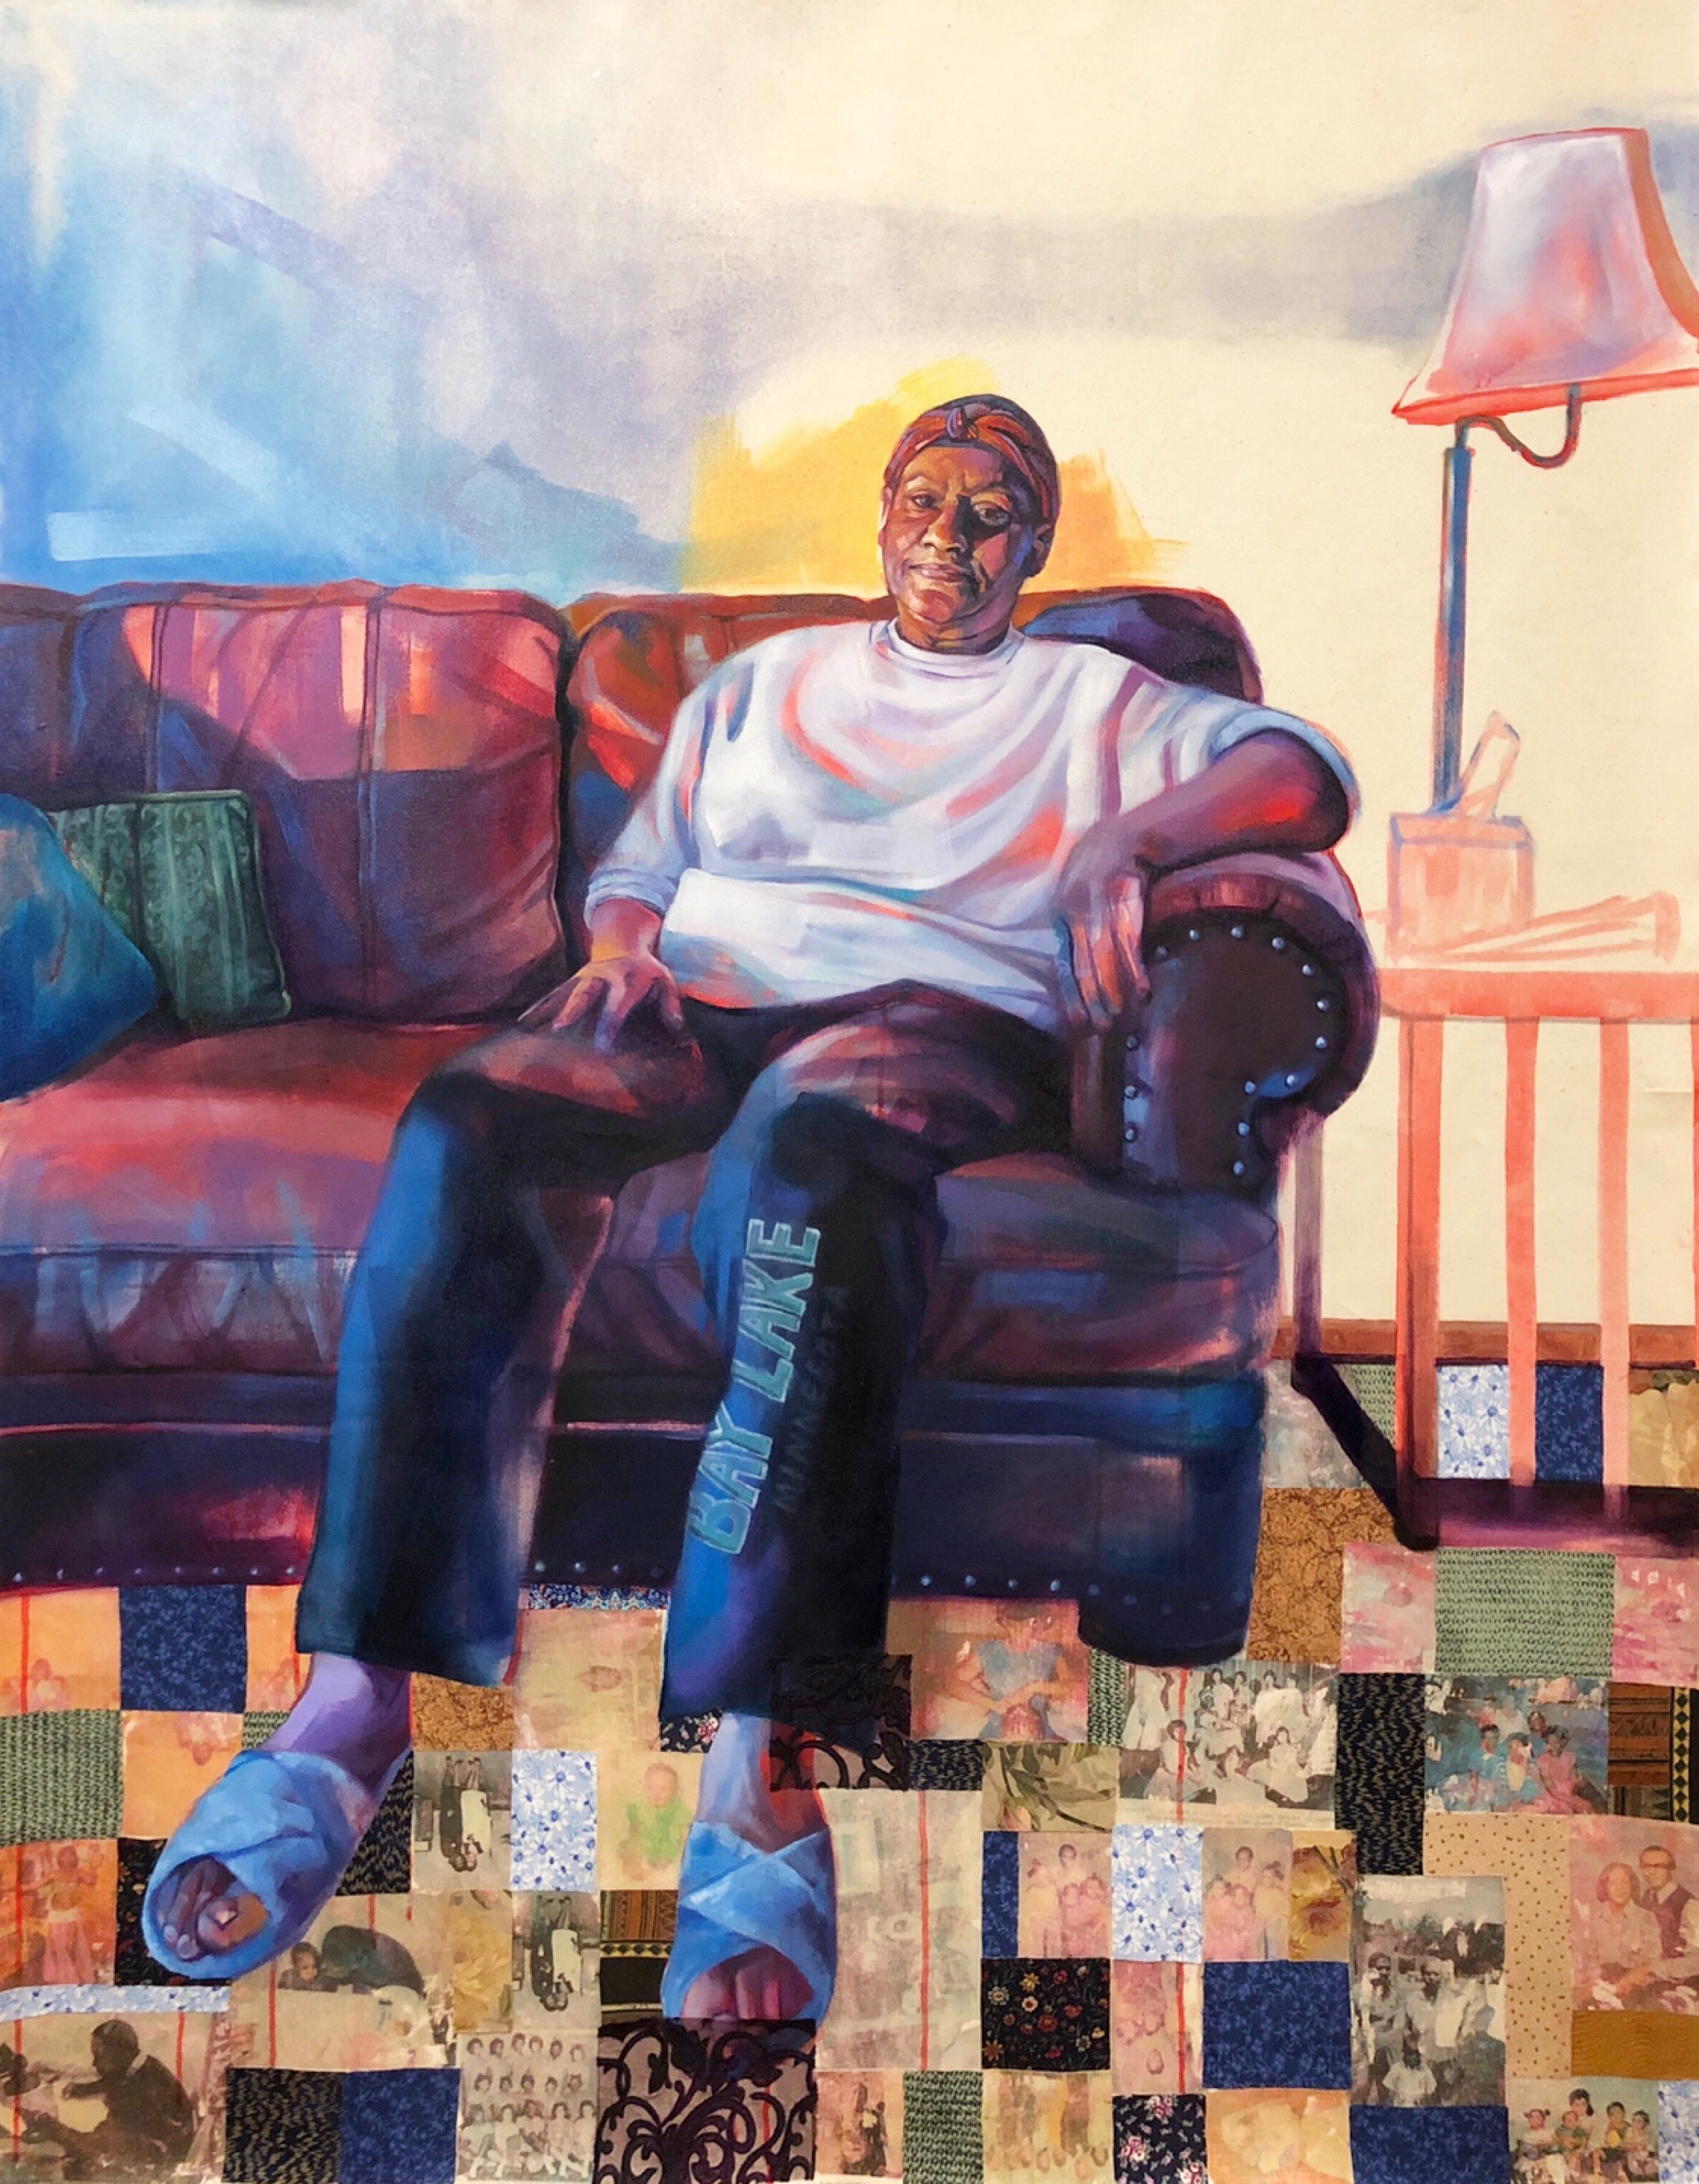 "Ellen Barlow 66"" x 48"" Oil, pastel, acrylic, photo transfer, fabric on canvas, 2019"